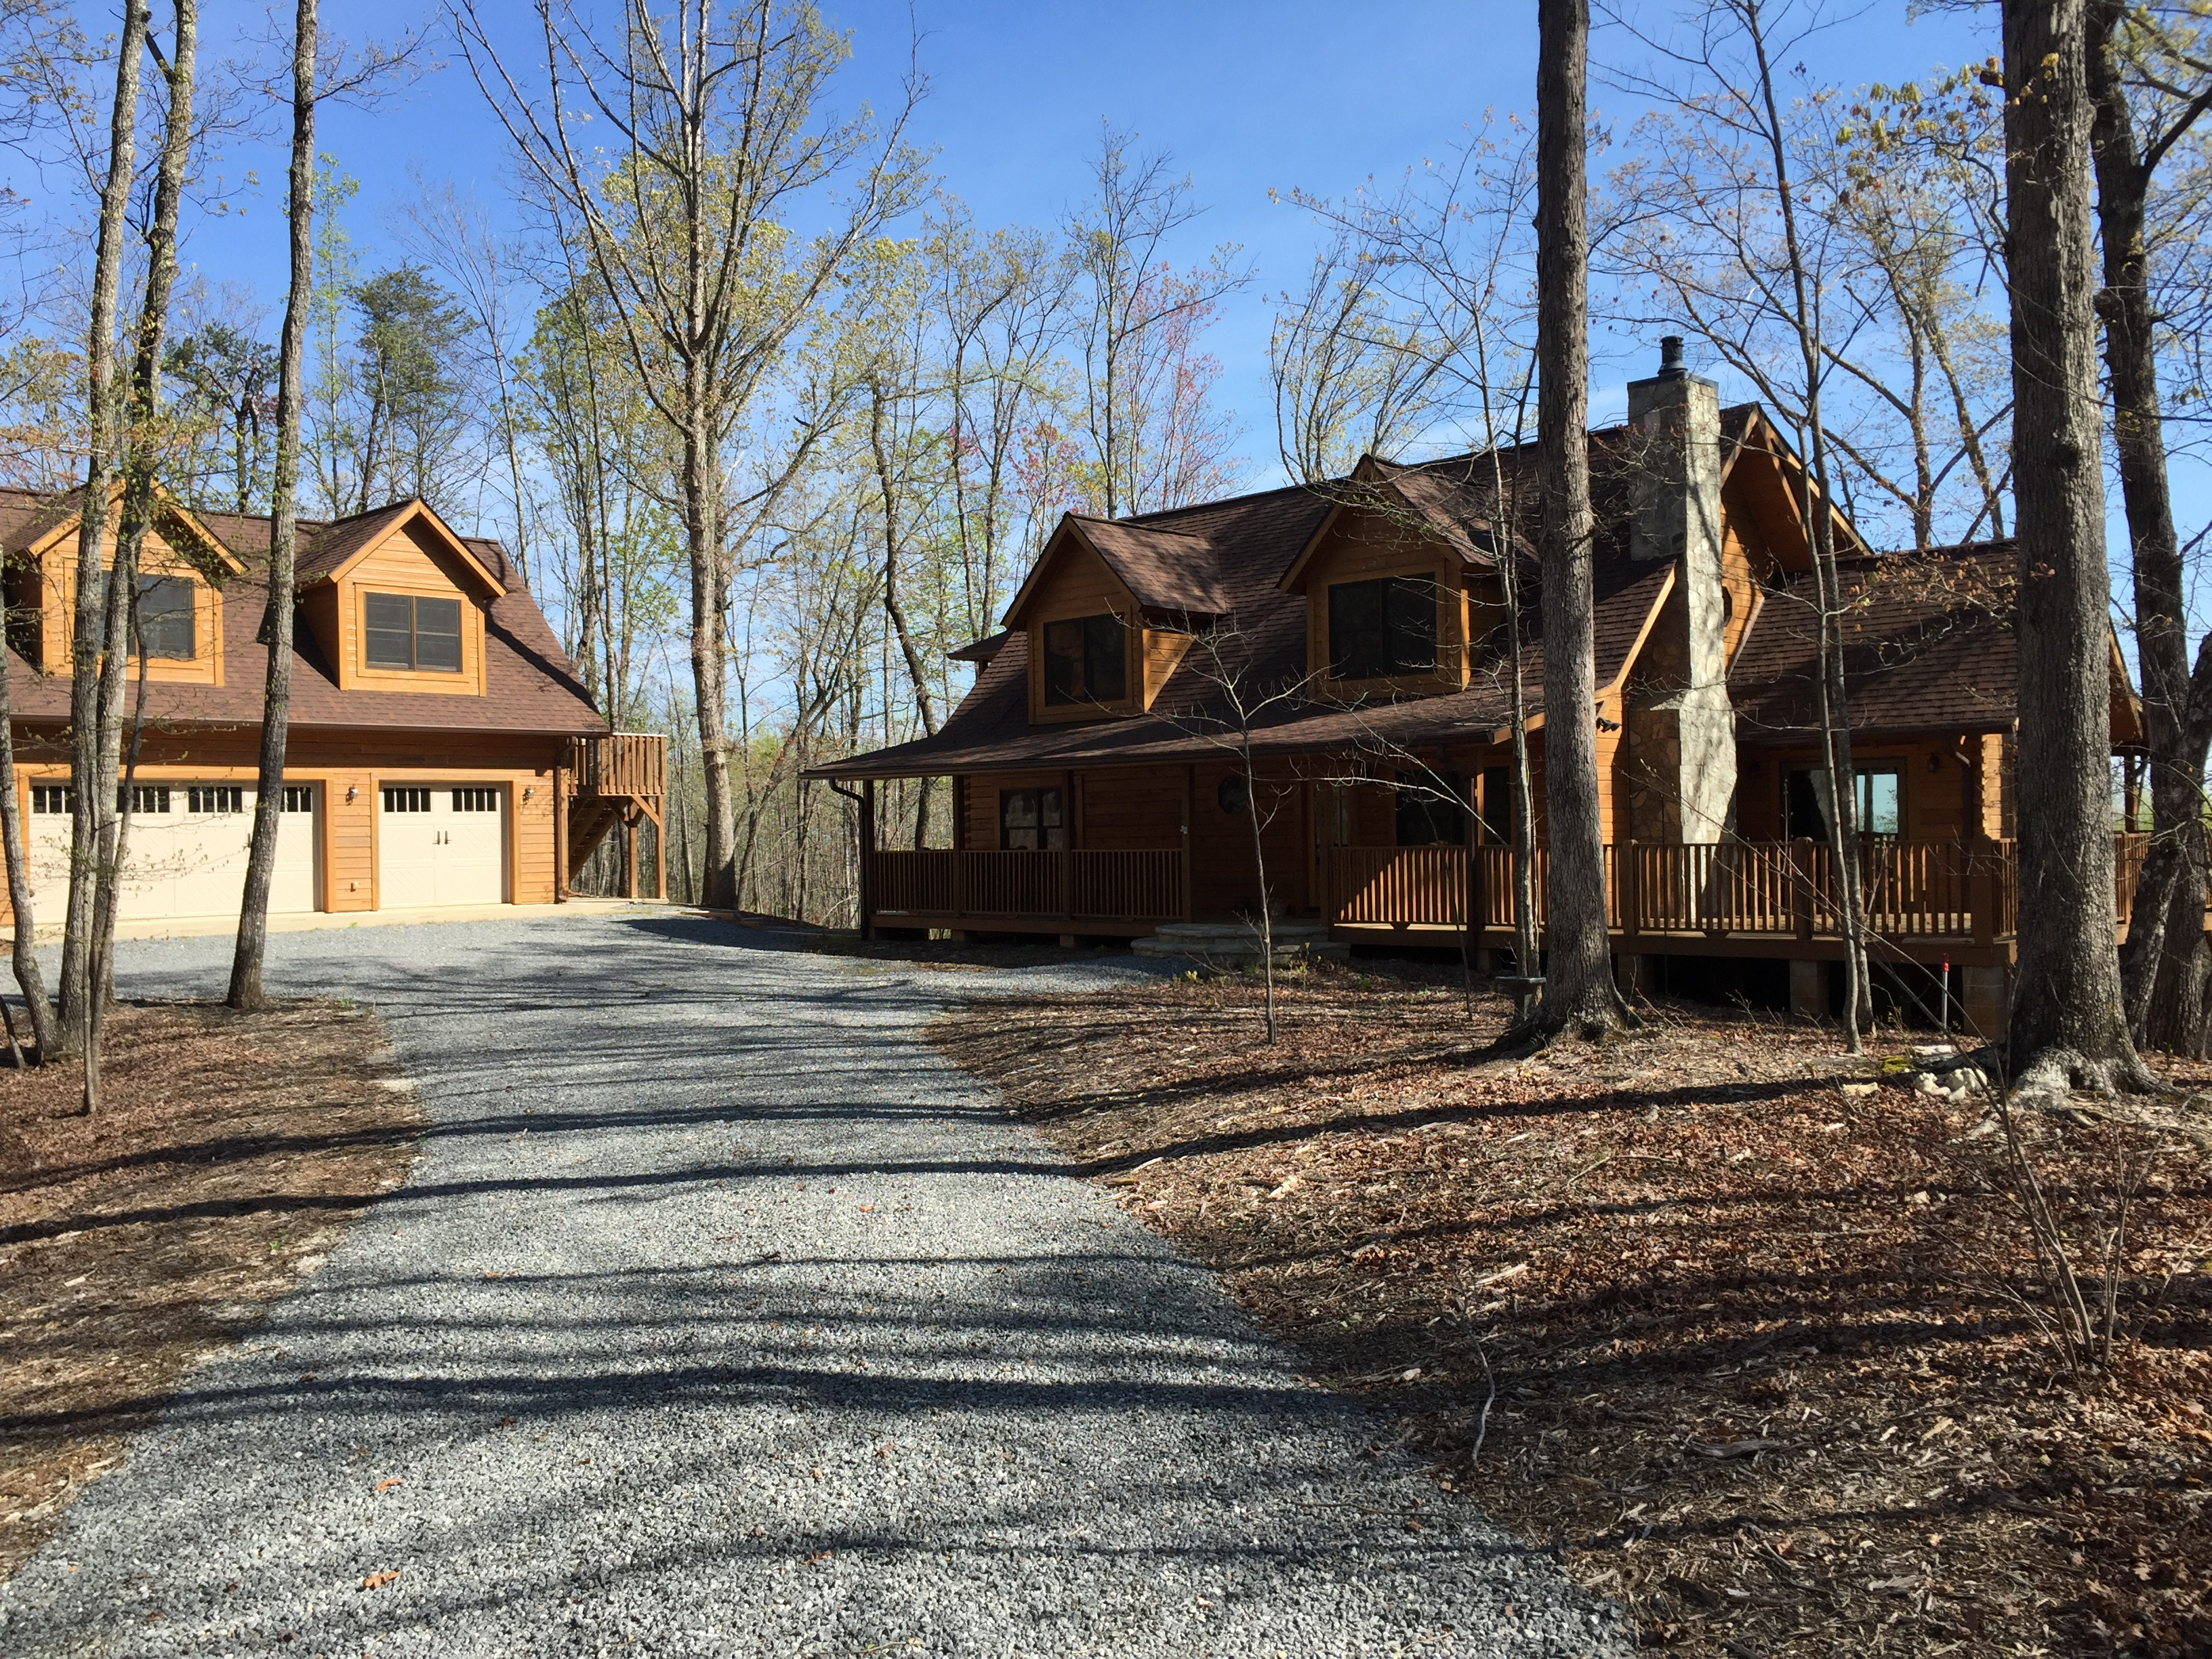 larger log cabin images nc for the mountain bear blue cabins stay jefferson ridge vacation main click above rental rentals about image black